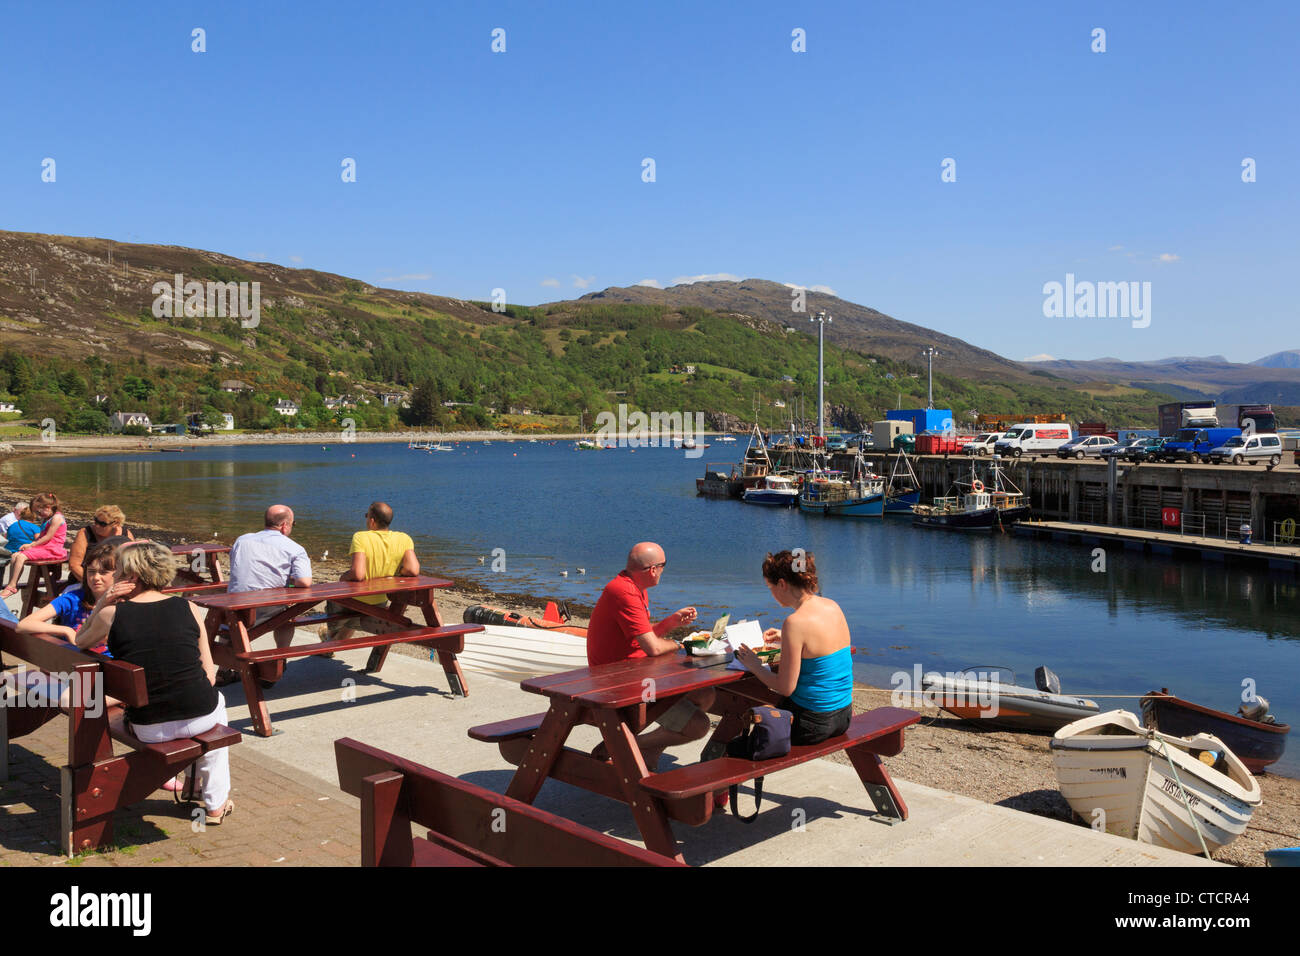 People sitting at picnic tables on seafront with Loch Broom fishing harbour on northwest highlands coast in summer - Stock Image